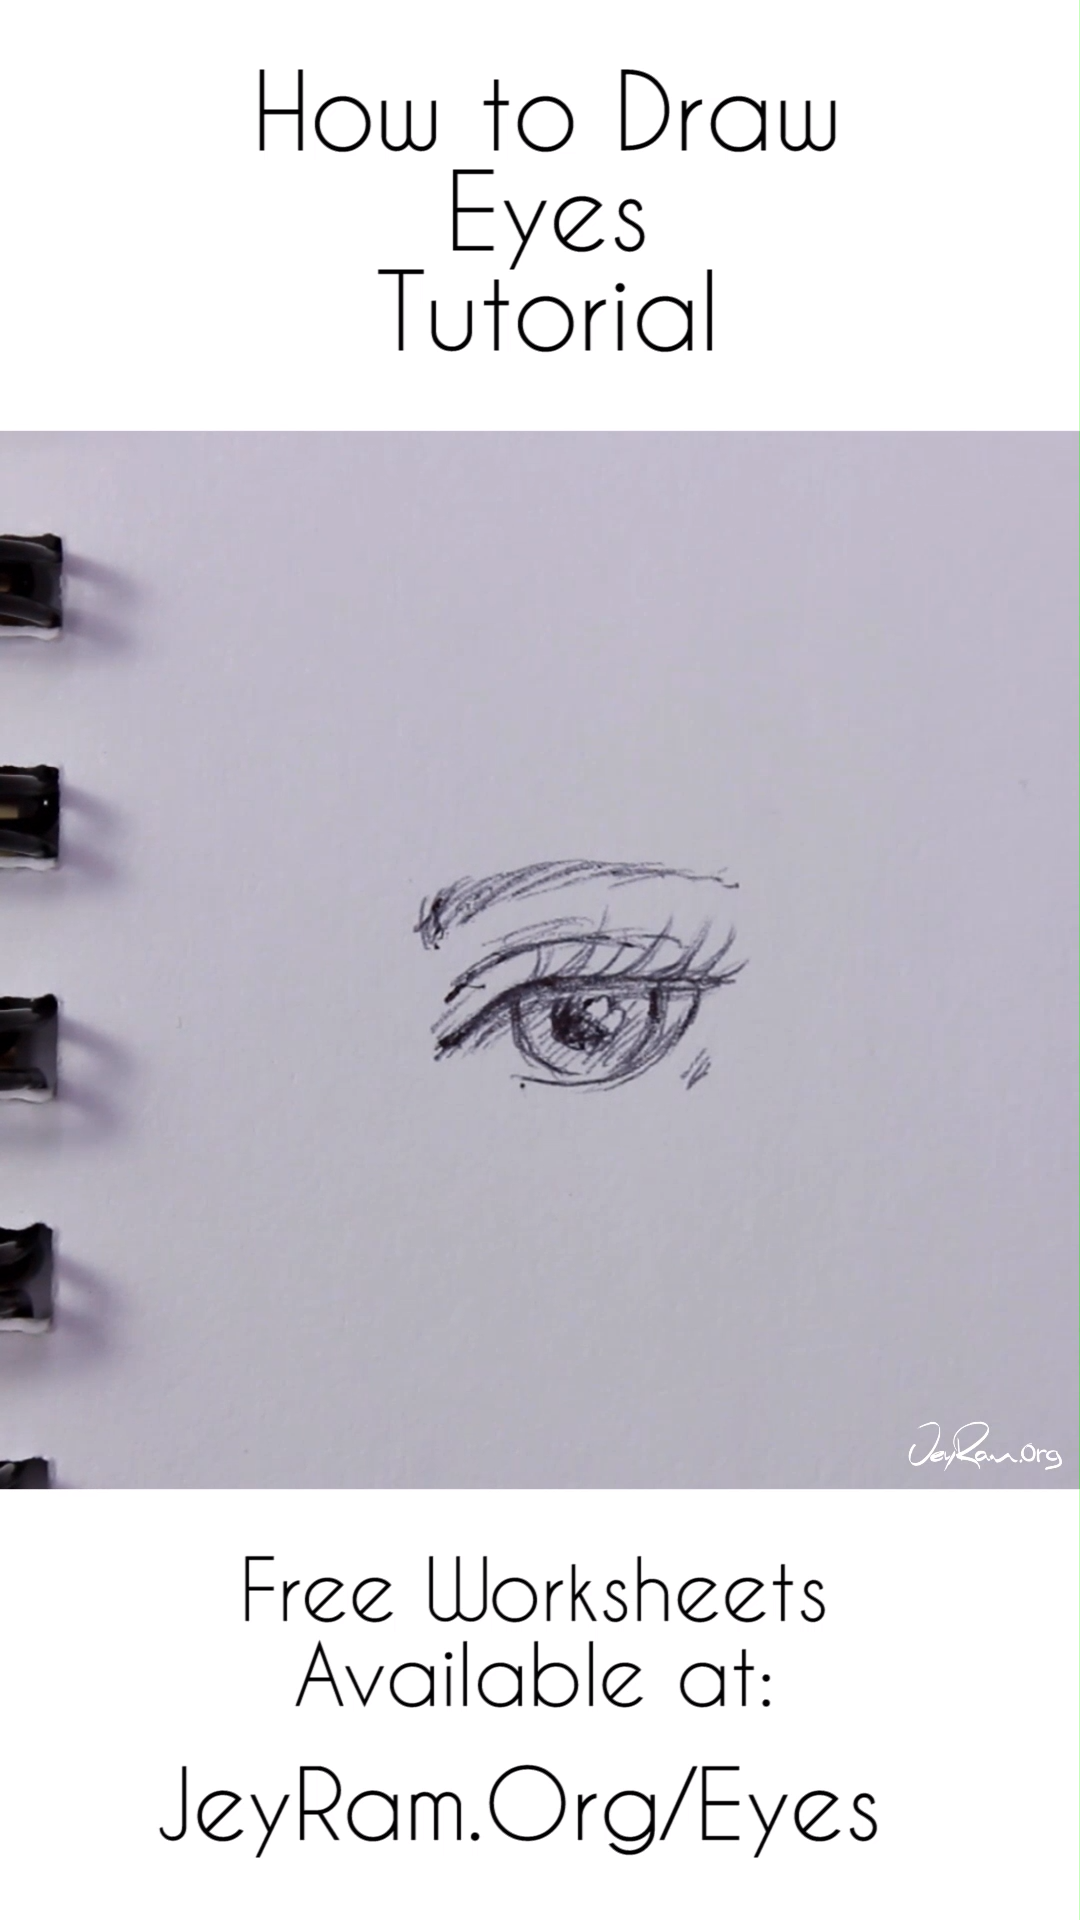 How To Draw The Eyes Step By Step For Beginners Free Printable Pdf How To Draw The Eyes Step By Step For Beg In 2020 Eye Drawing Pencil Drawings For Beginners Drawings